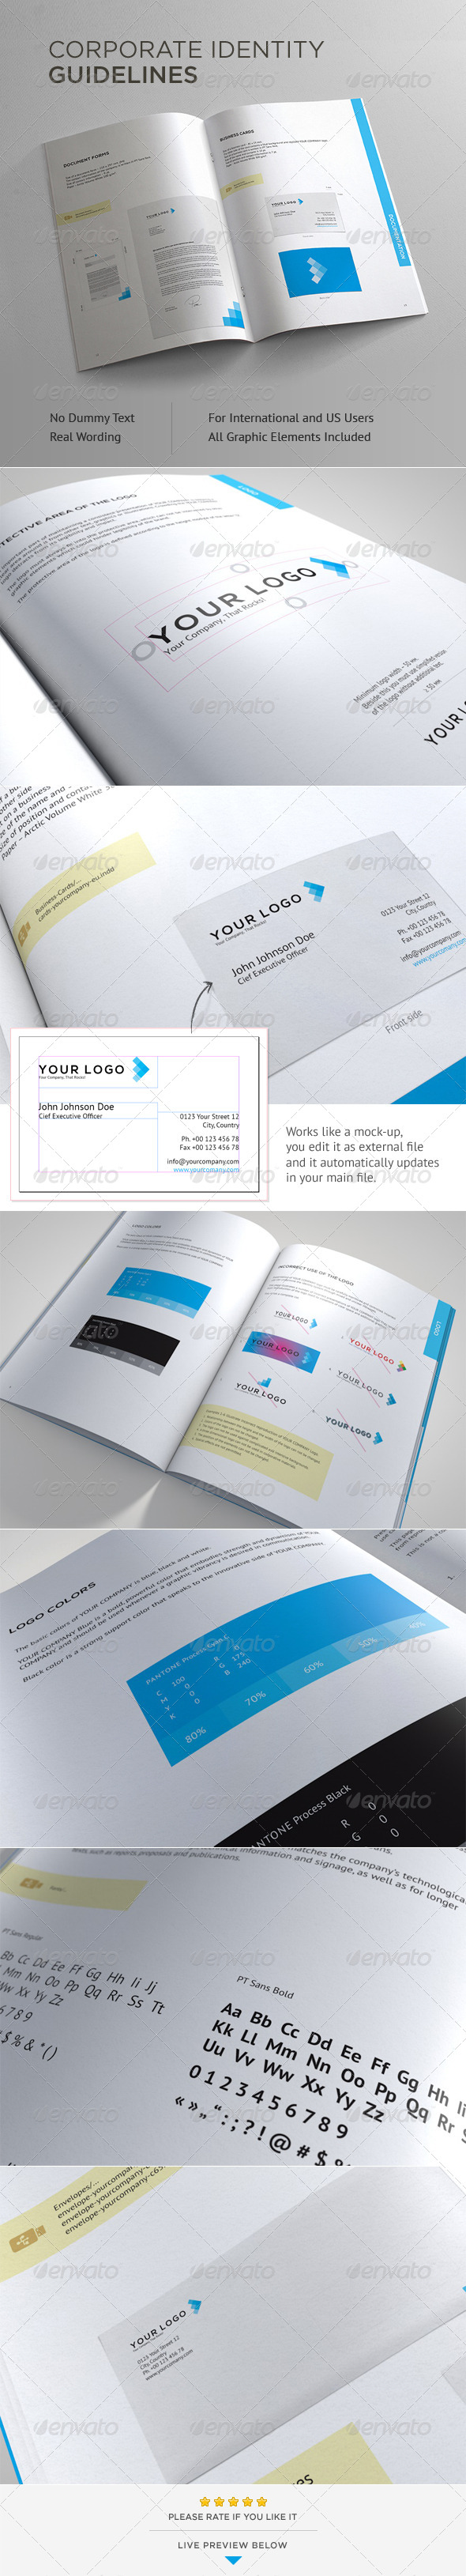 Free brand guidelines template indesign for Free brand guidelines template